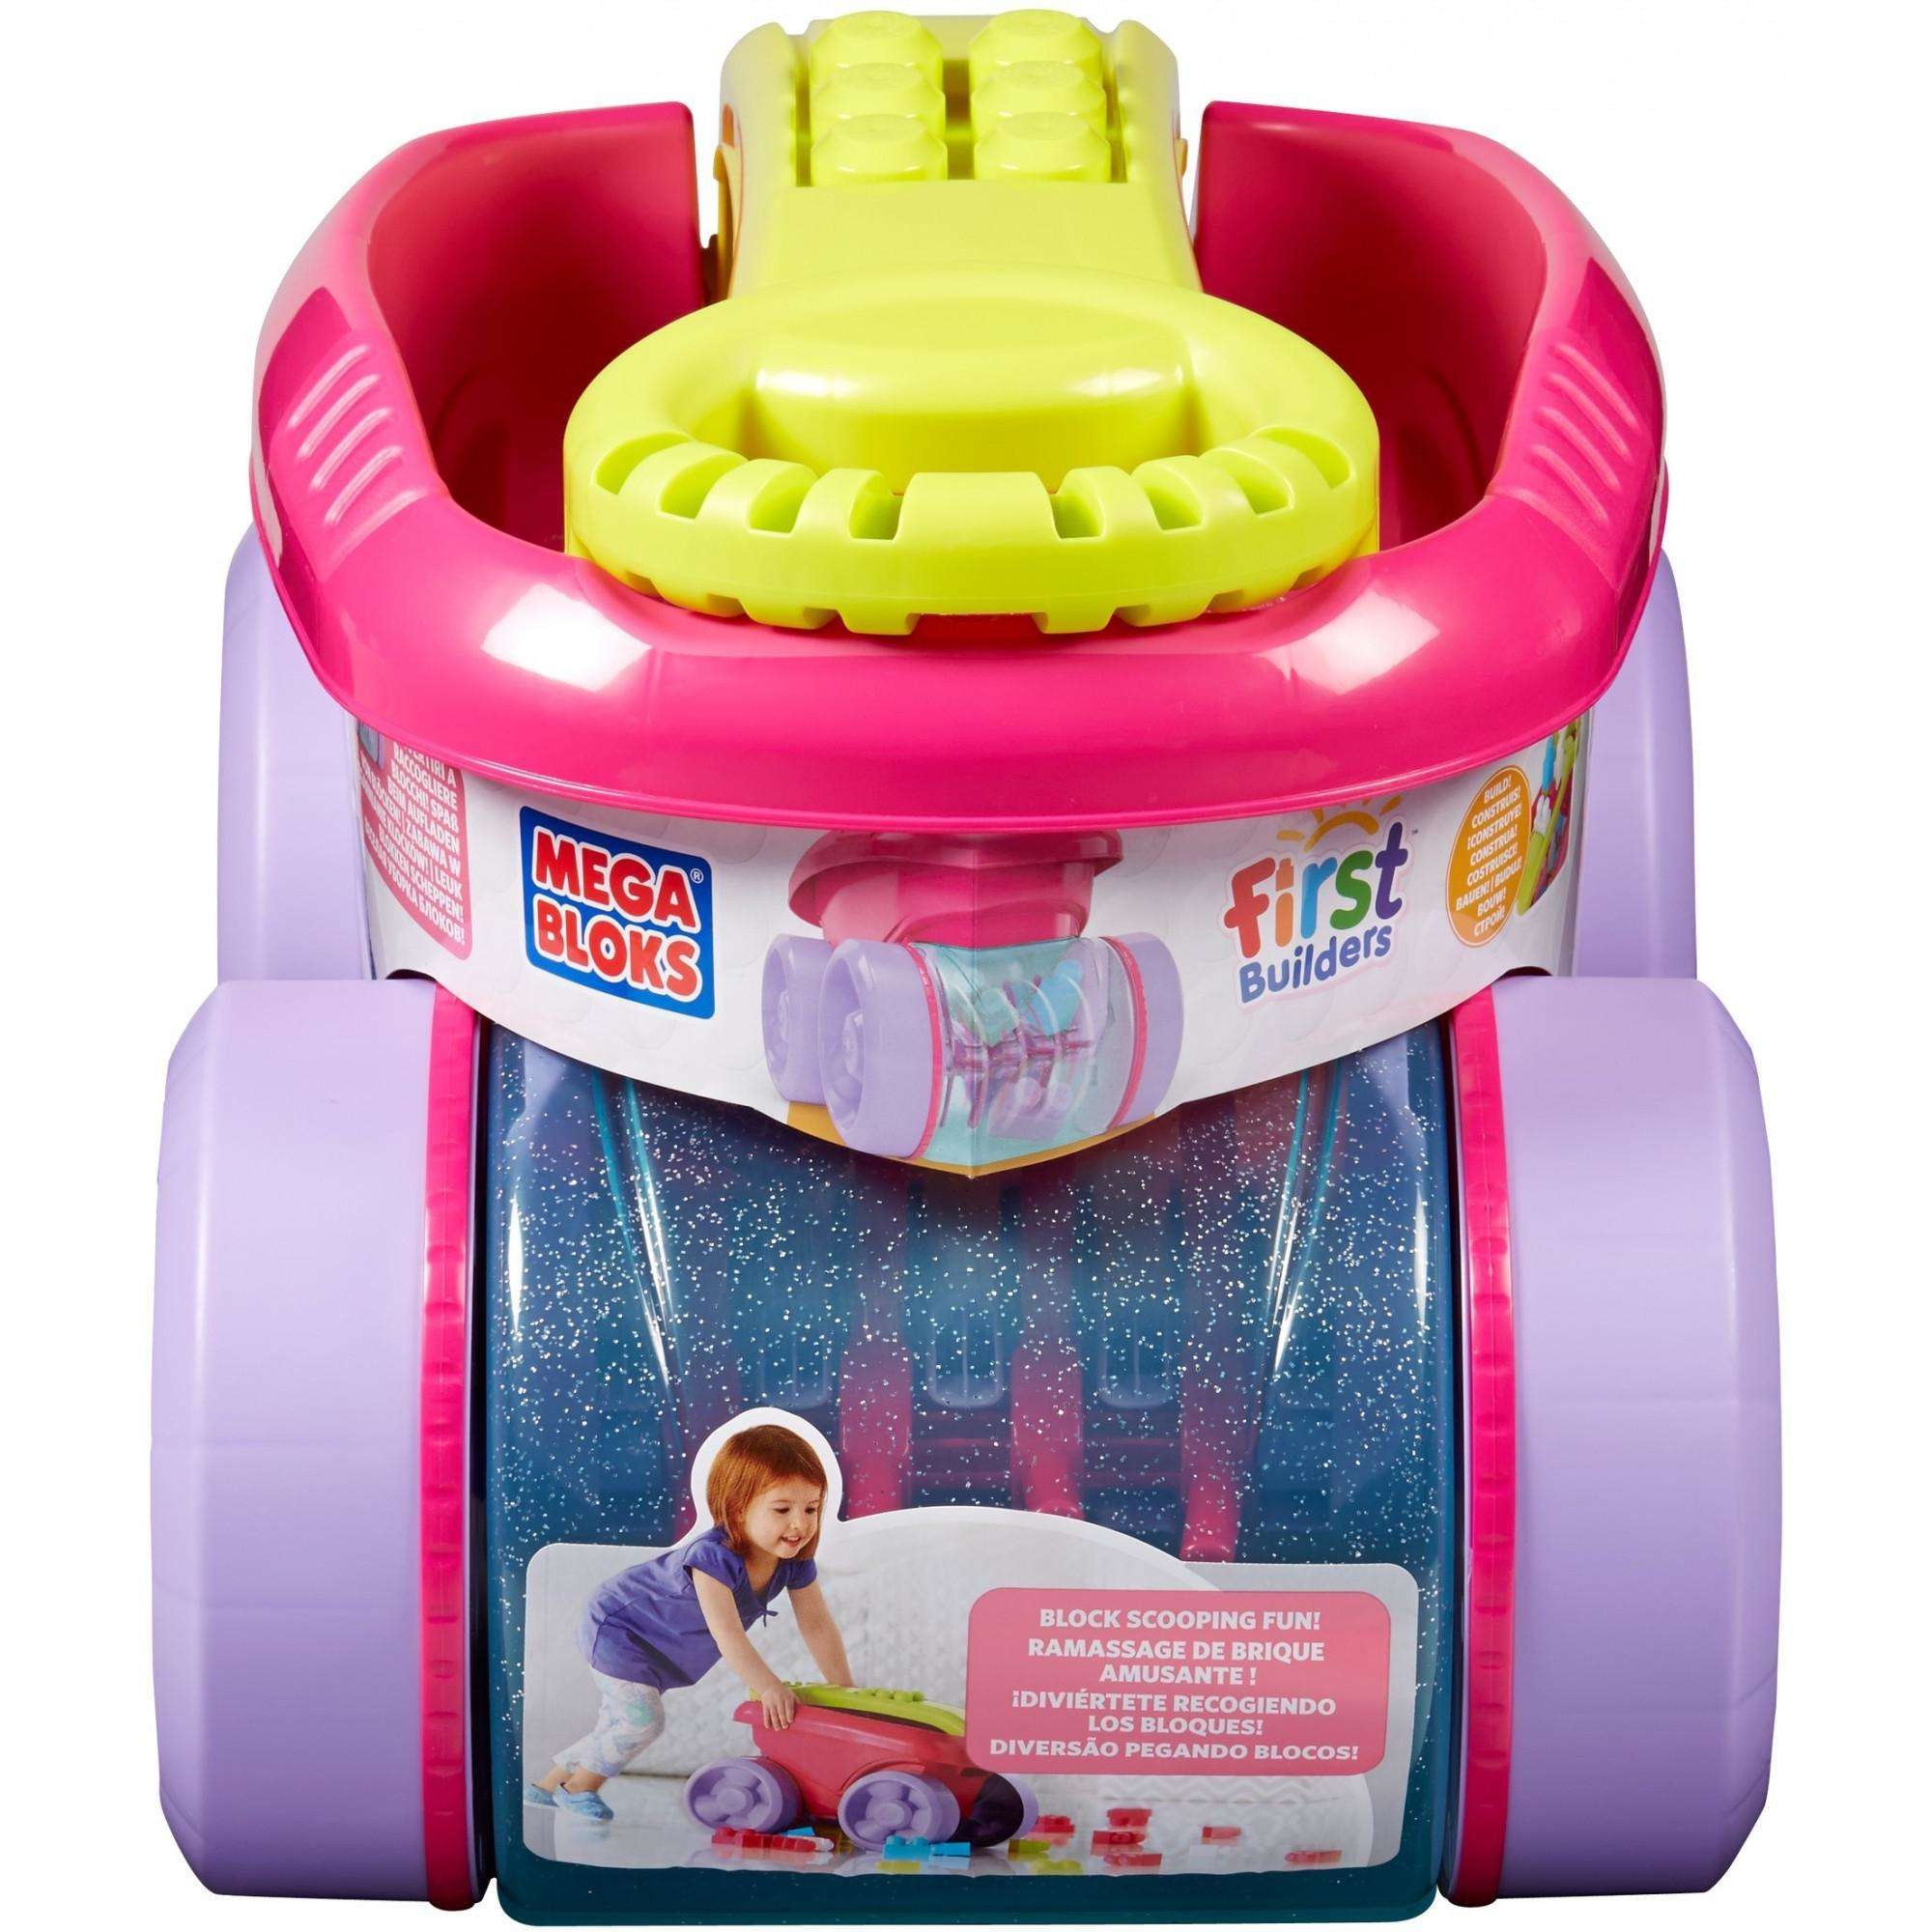 Mega Bloks First Builders Block Scooping Fun Wagon Building Set, Pink | CNK33 by Generic